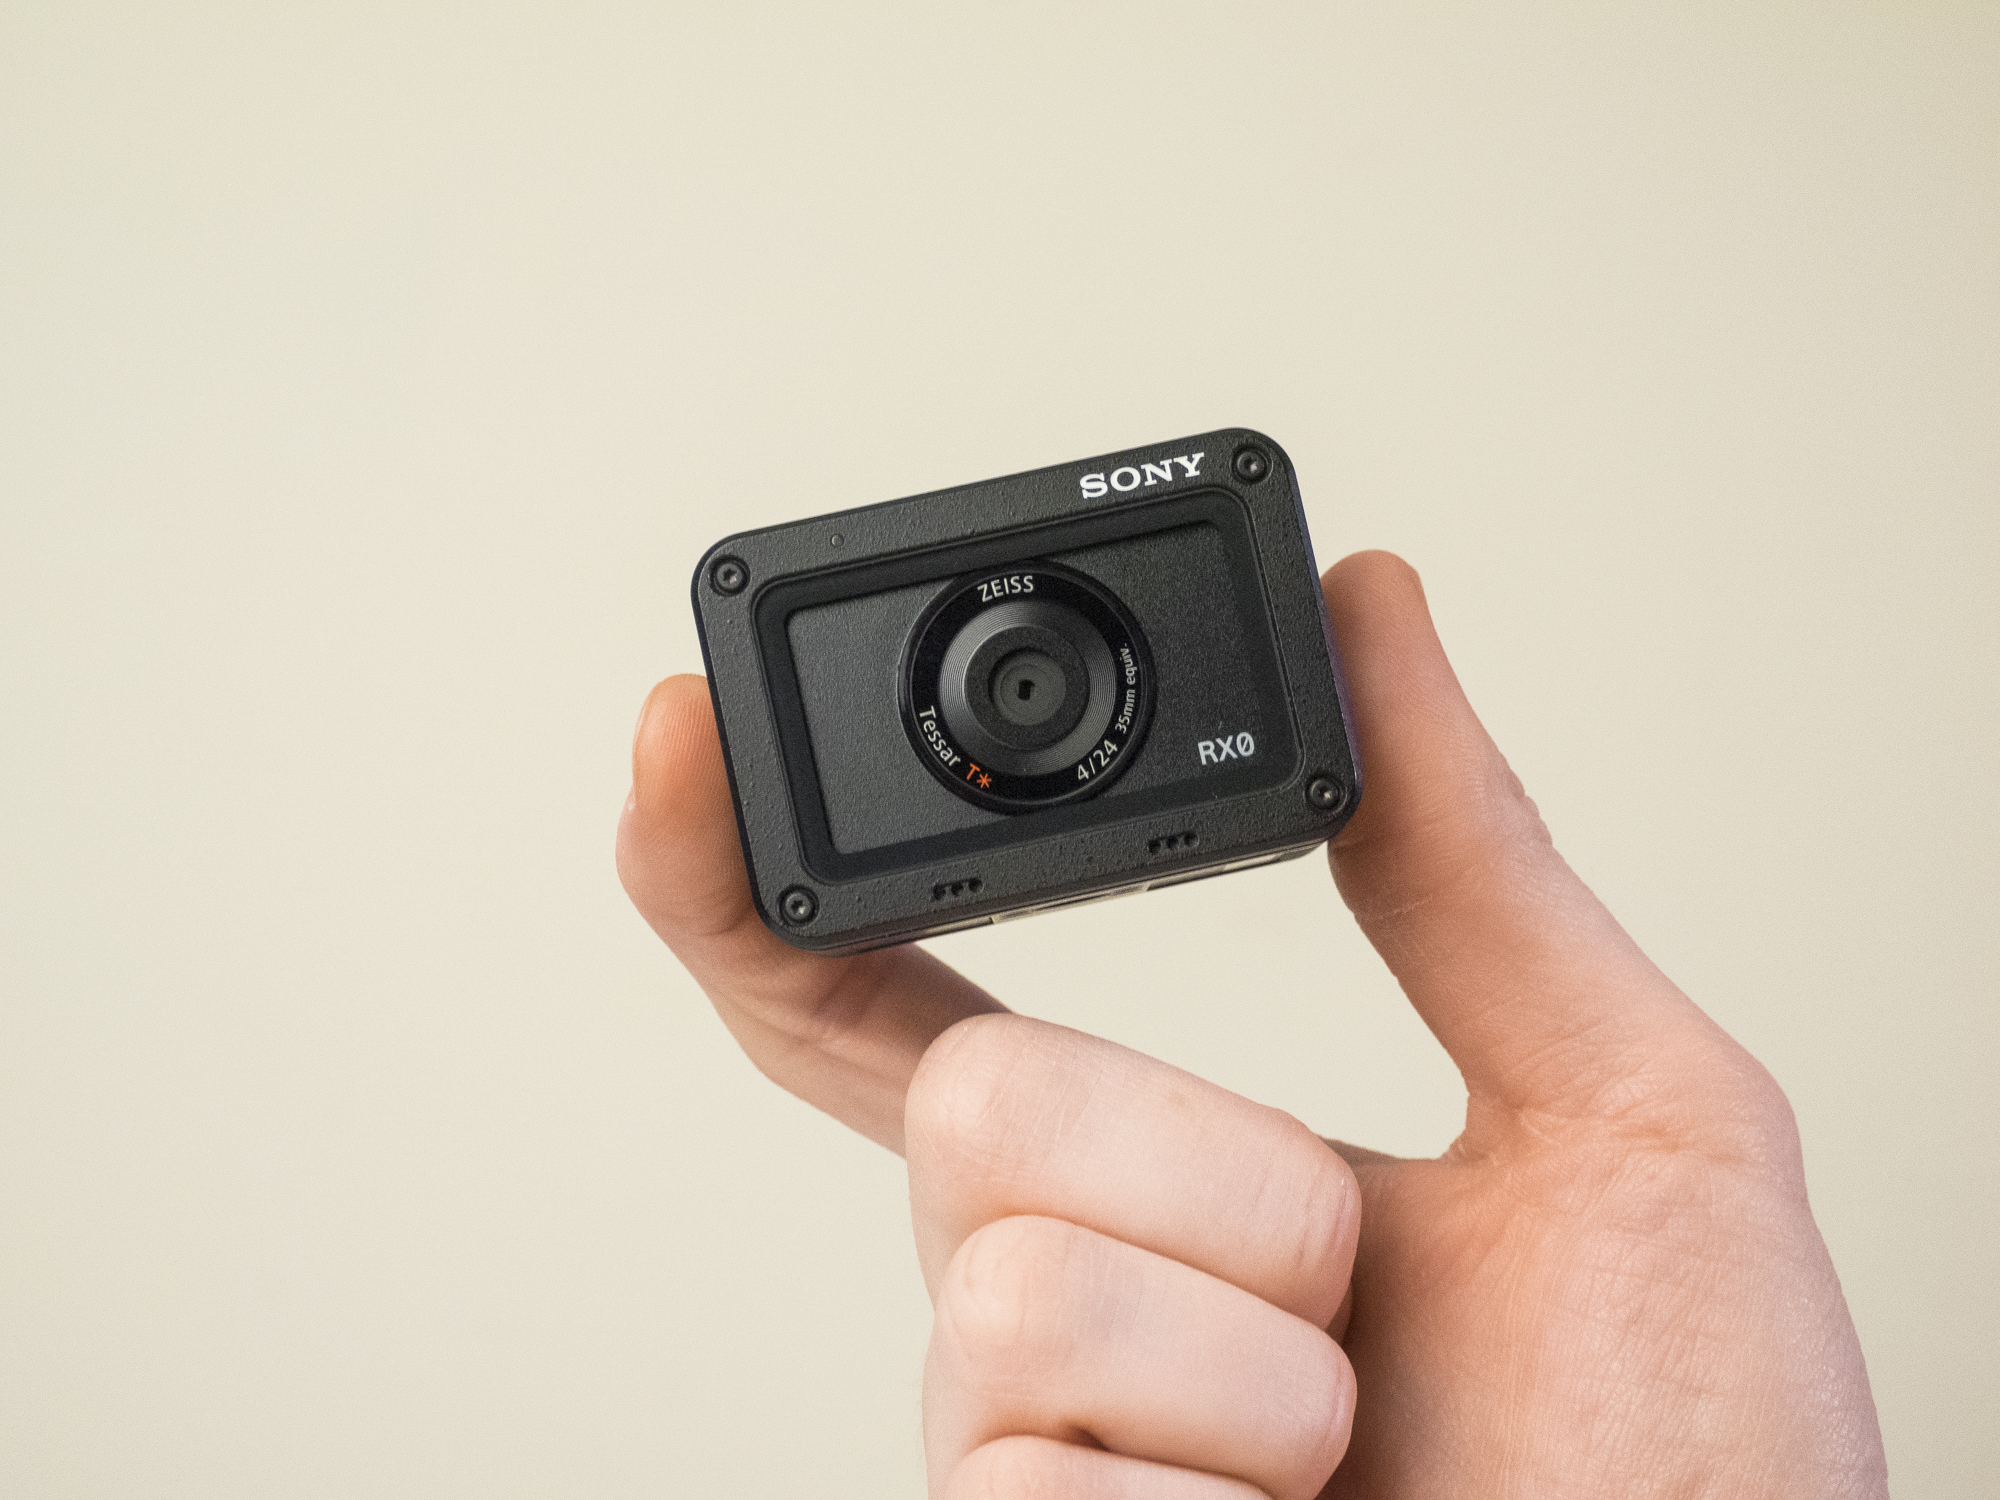 sony rxo product images 22.jpg